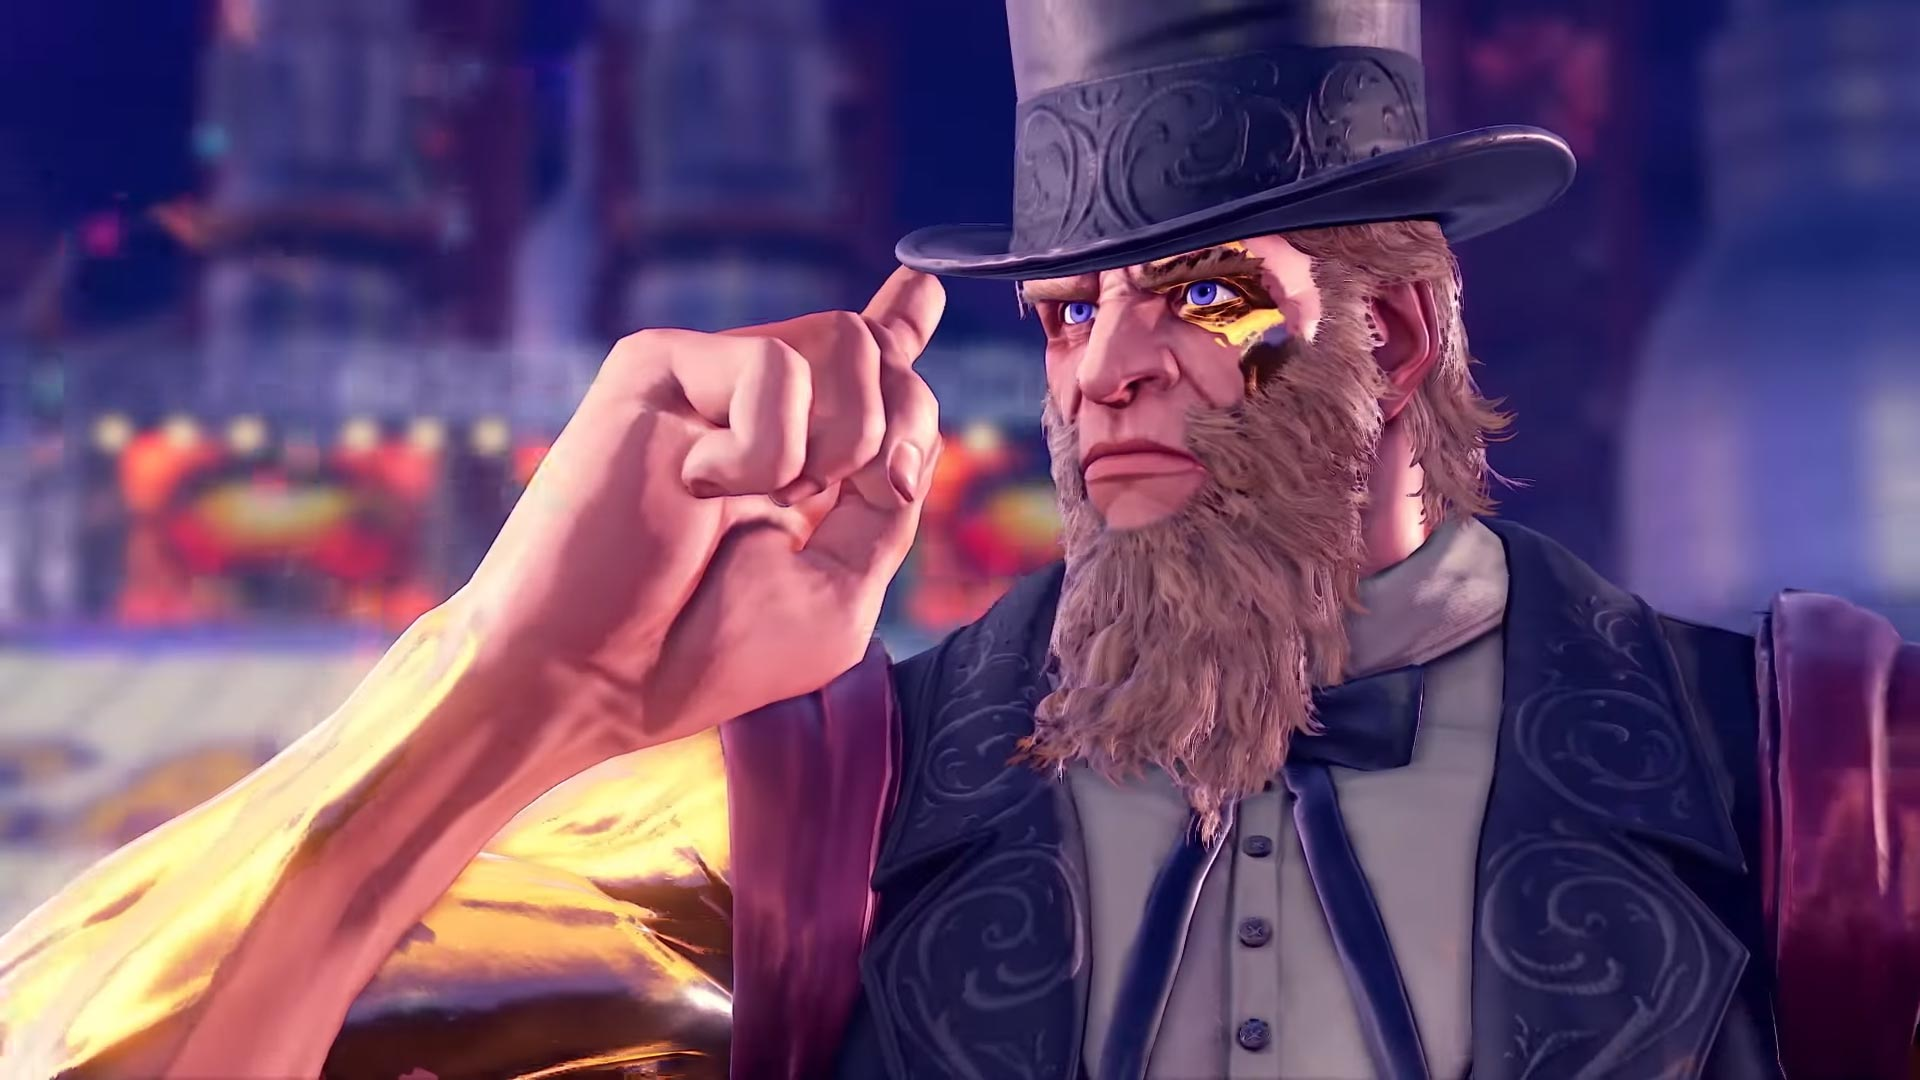 G and Sagat Street Fighter 5: Arcade Edition 8 out of 15 image gallery